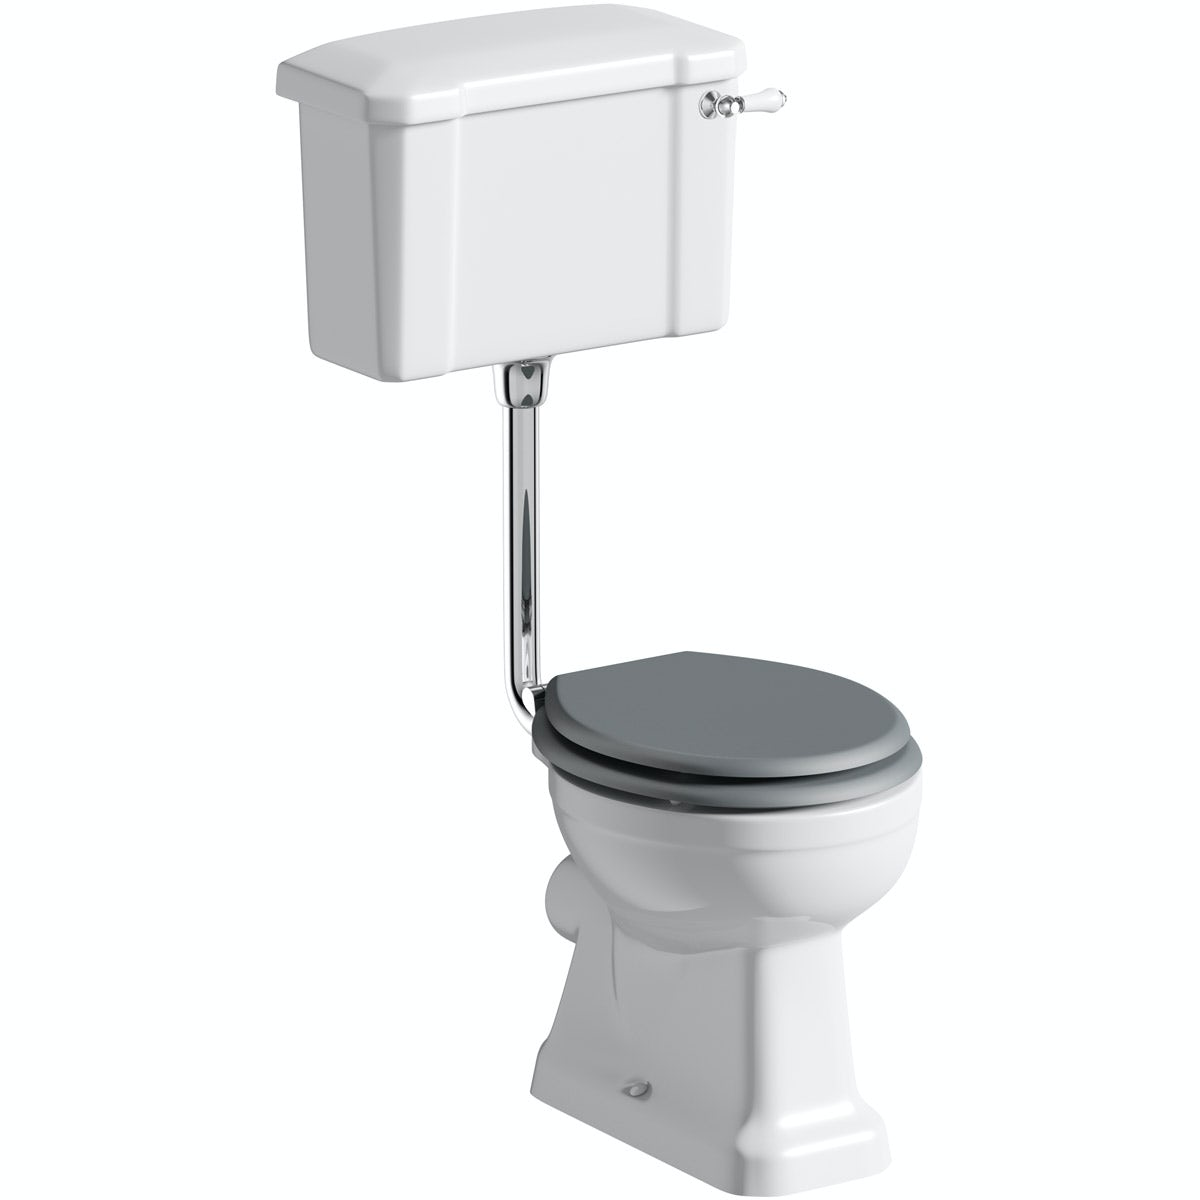 The Bath Co. Camberley low level toilet inc grey soft close seat